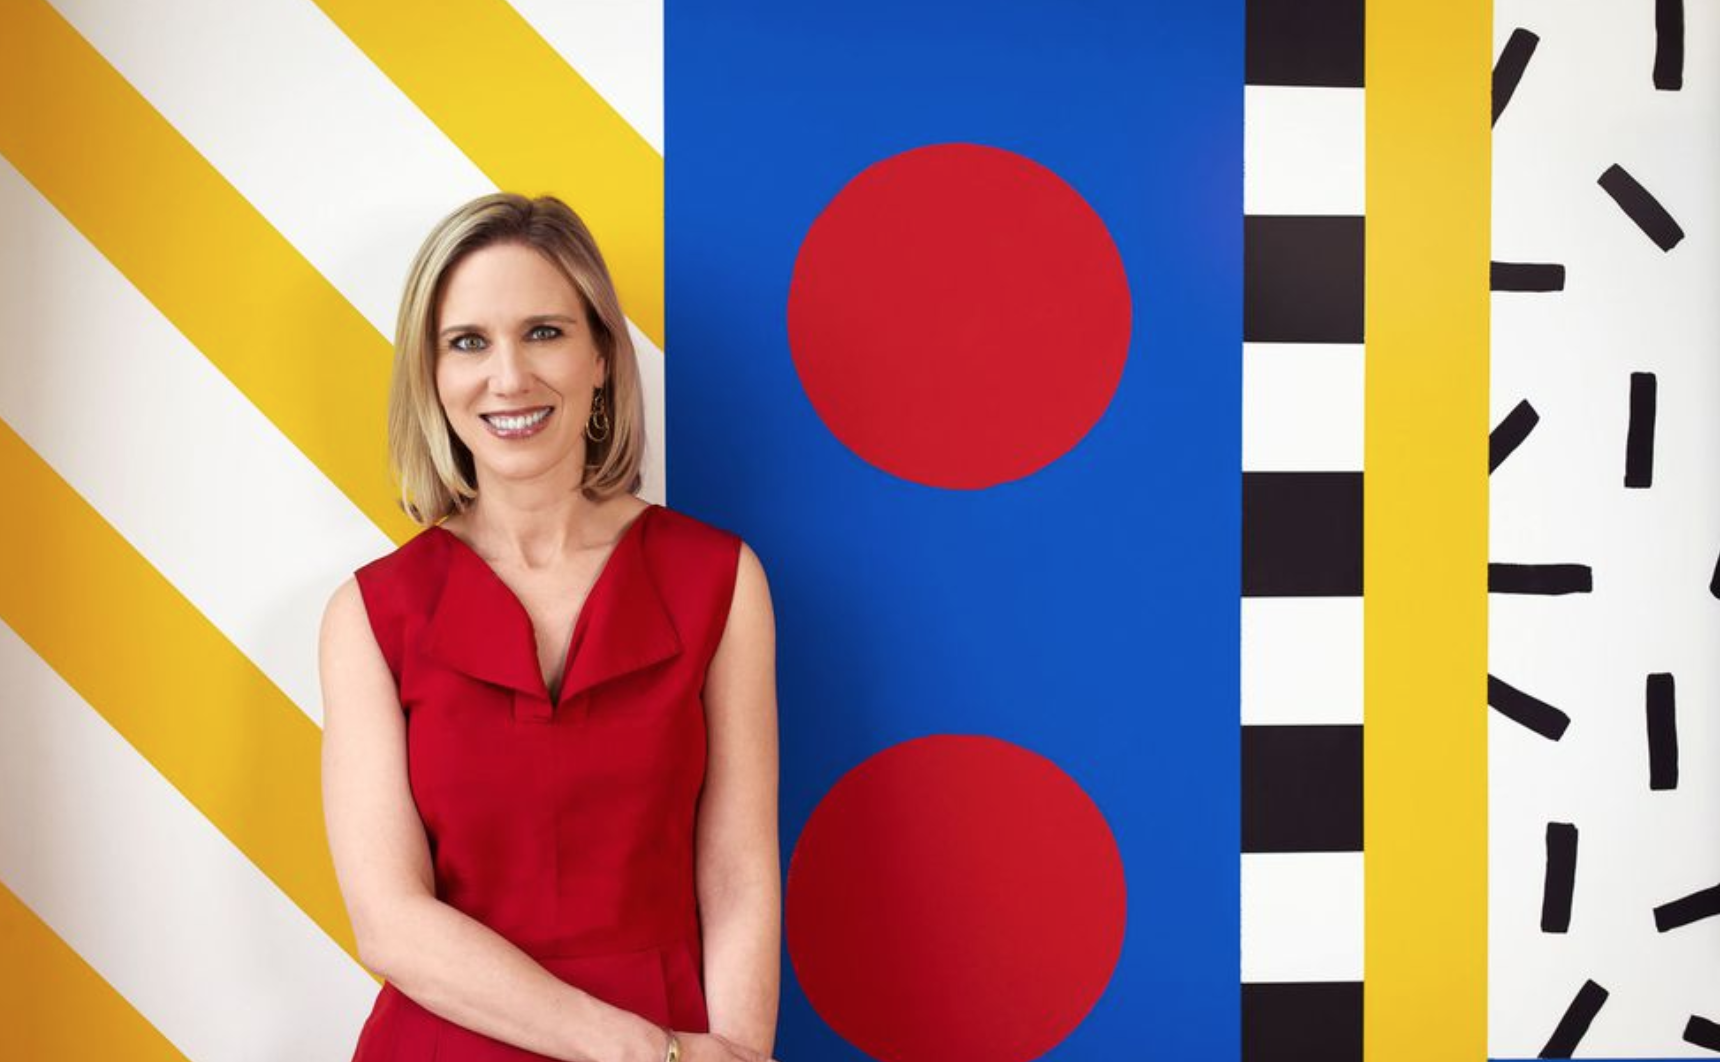 How Marne Levine landed one of Silicon Valley's most coveted jobs - The Instagram COO shares her storyMarie Claire, April 2017